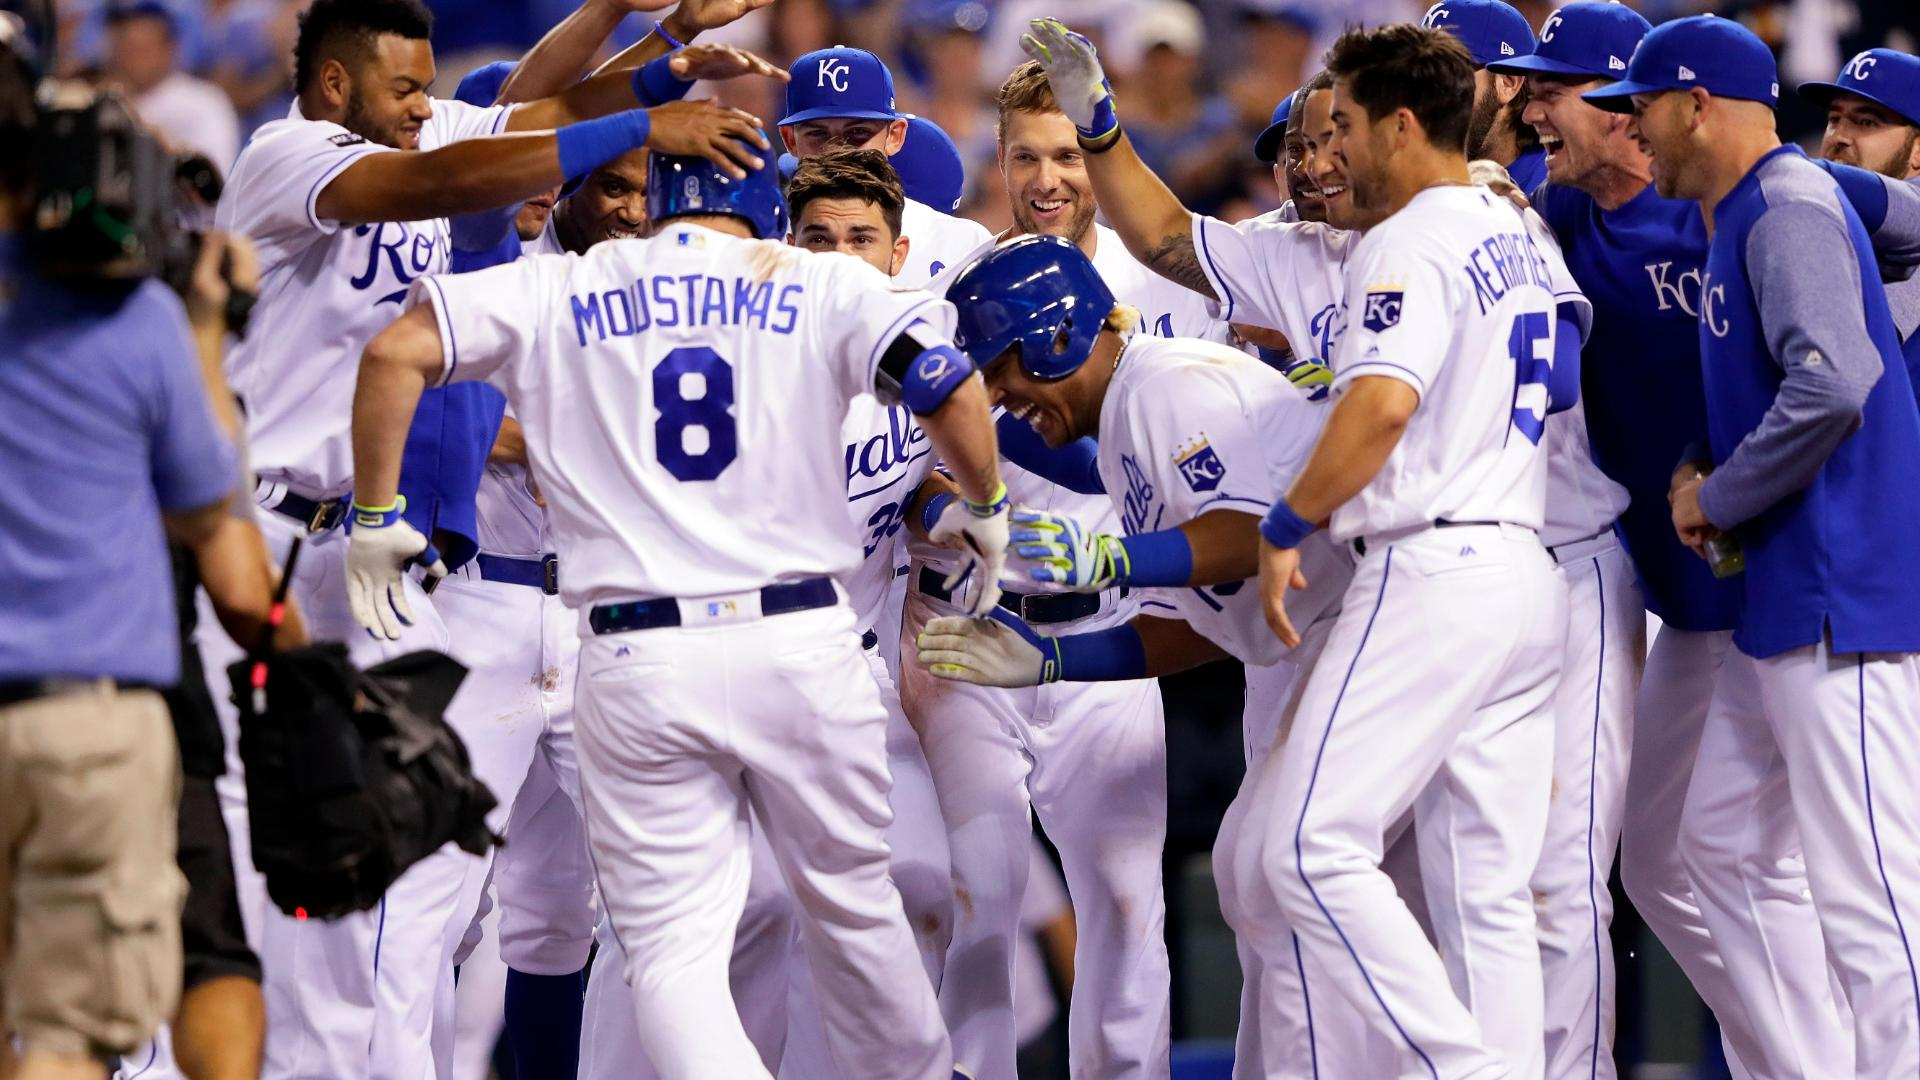 http://a.espncdn.com/media/motion/2017/0607/dm_170606_MLB_Royals_Moustakas_walk_off_home_run223/dm_170606_MLB_Royals_Moustakas_walk_off_home_run223.jpg